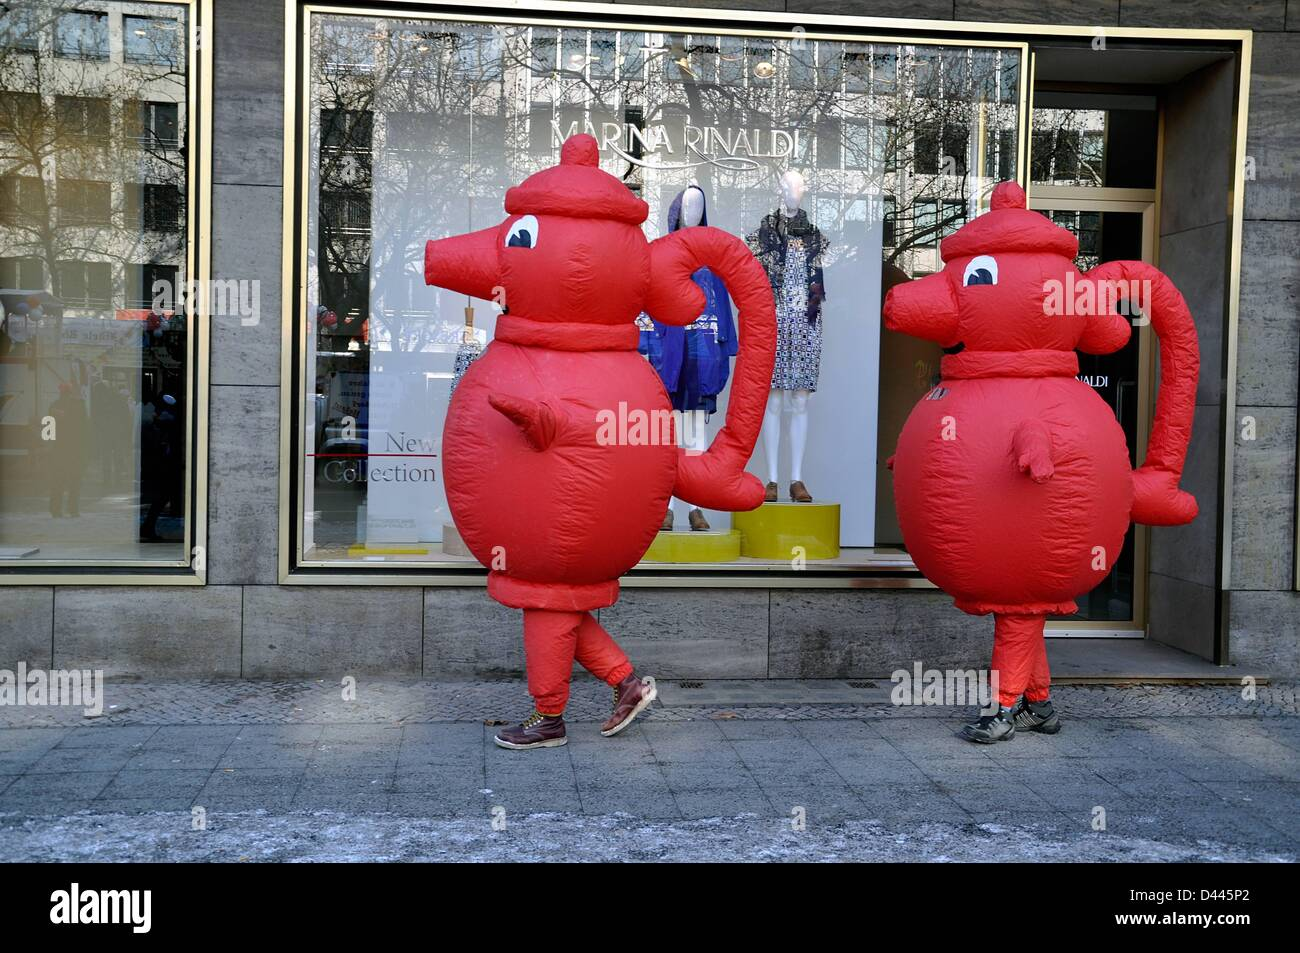 The German supermarkt chain Kaiser's Tengelmann advertises with two promoters wearing red coffee pots on Kurfürstendamm - Stock Image